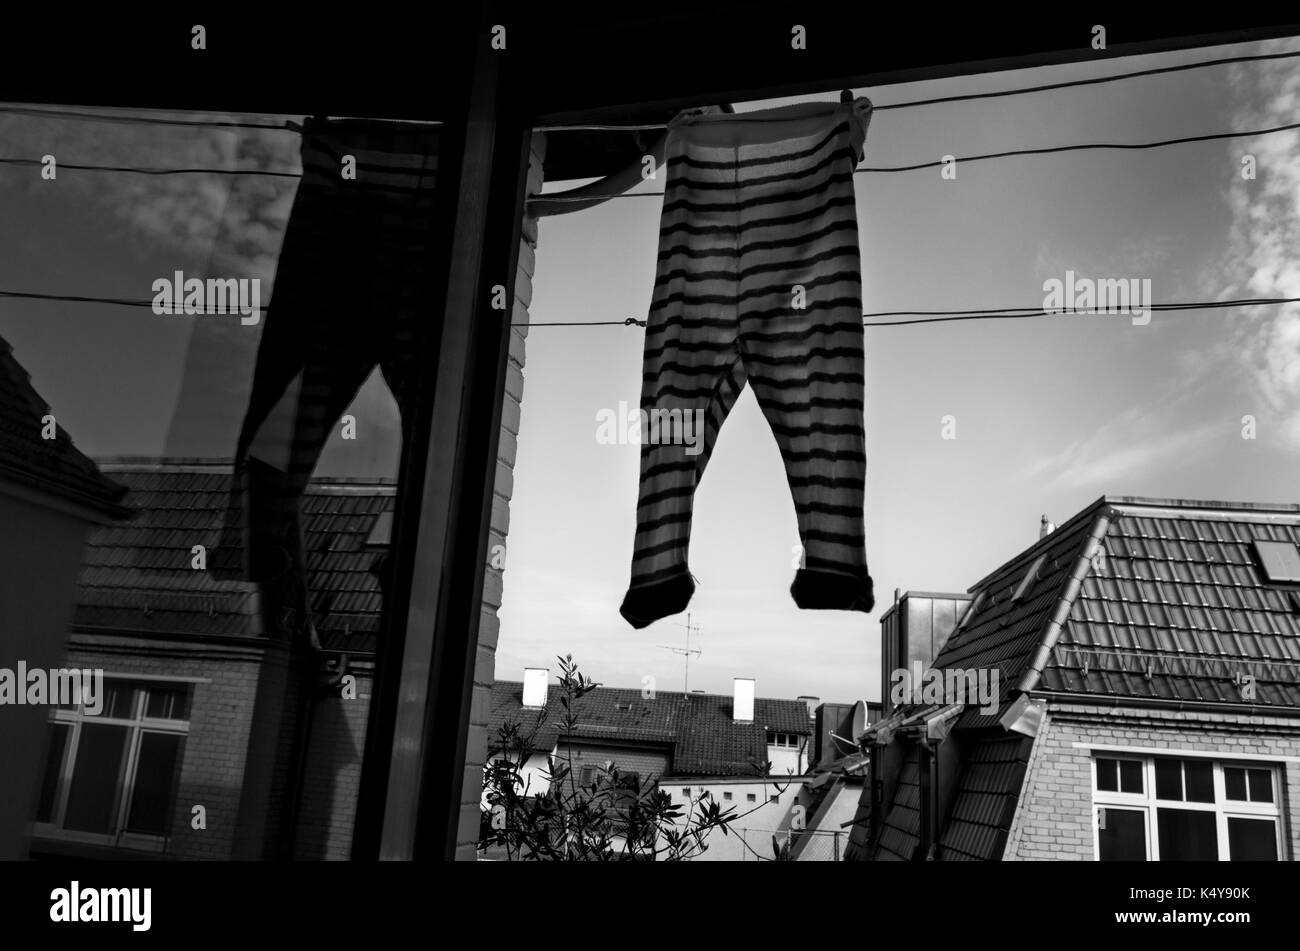 Baby jumpsuit hanging to dry on a balcony. - Stock Image